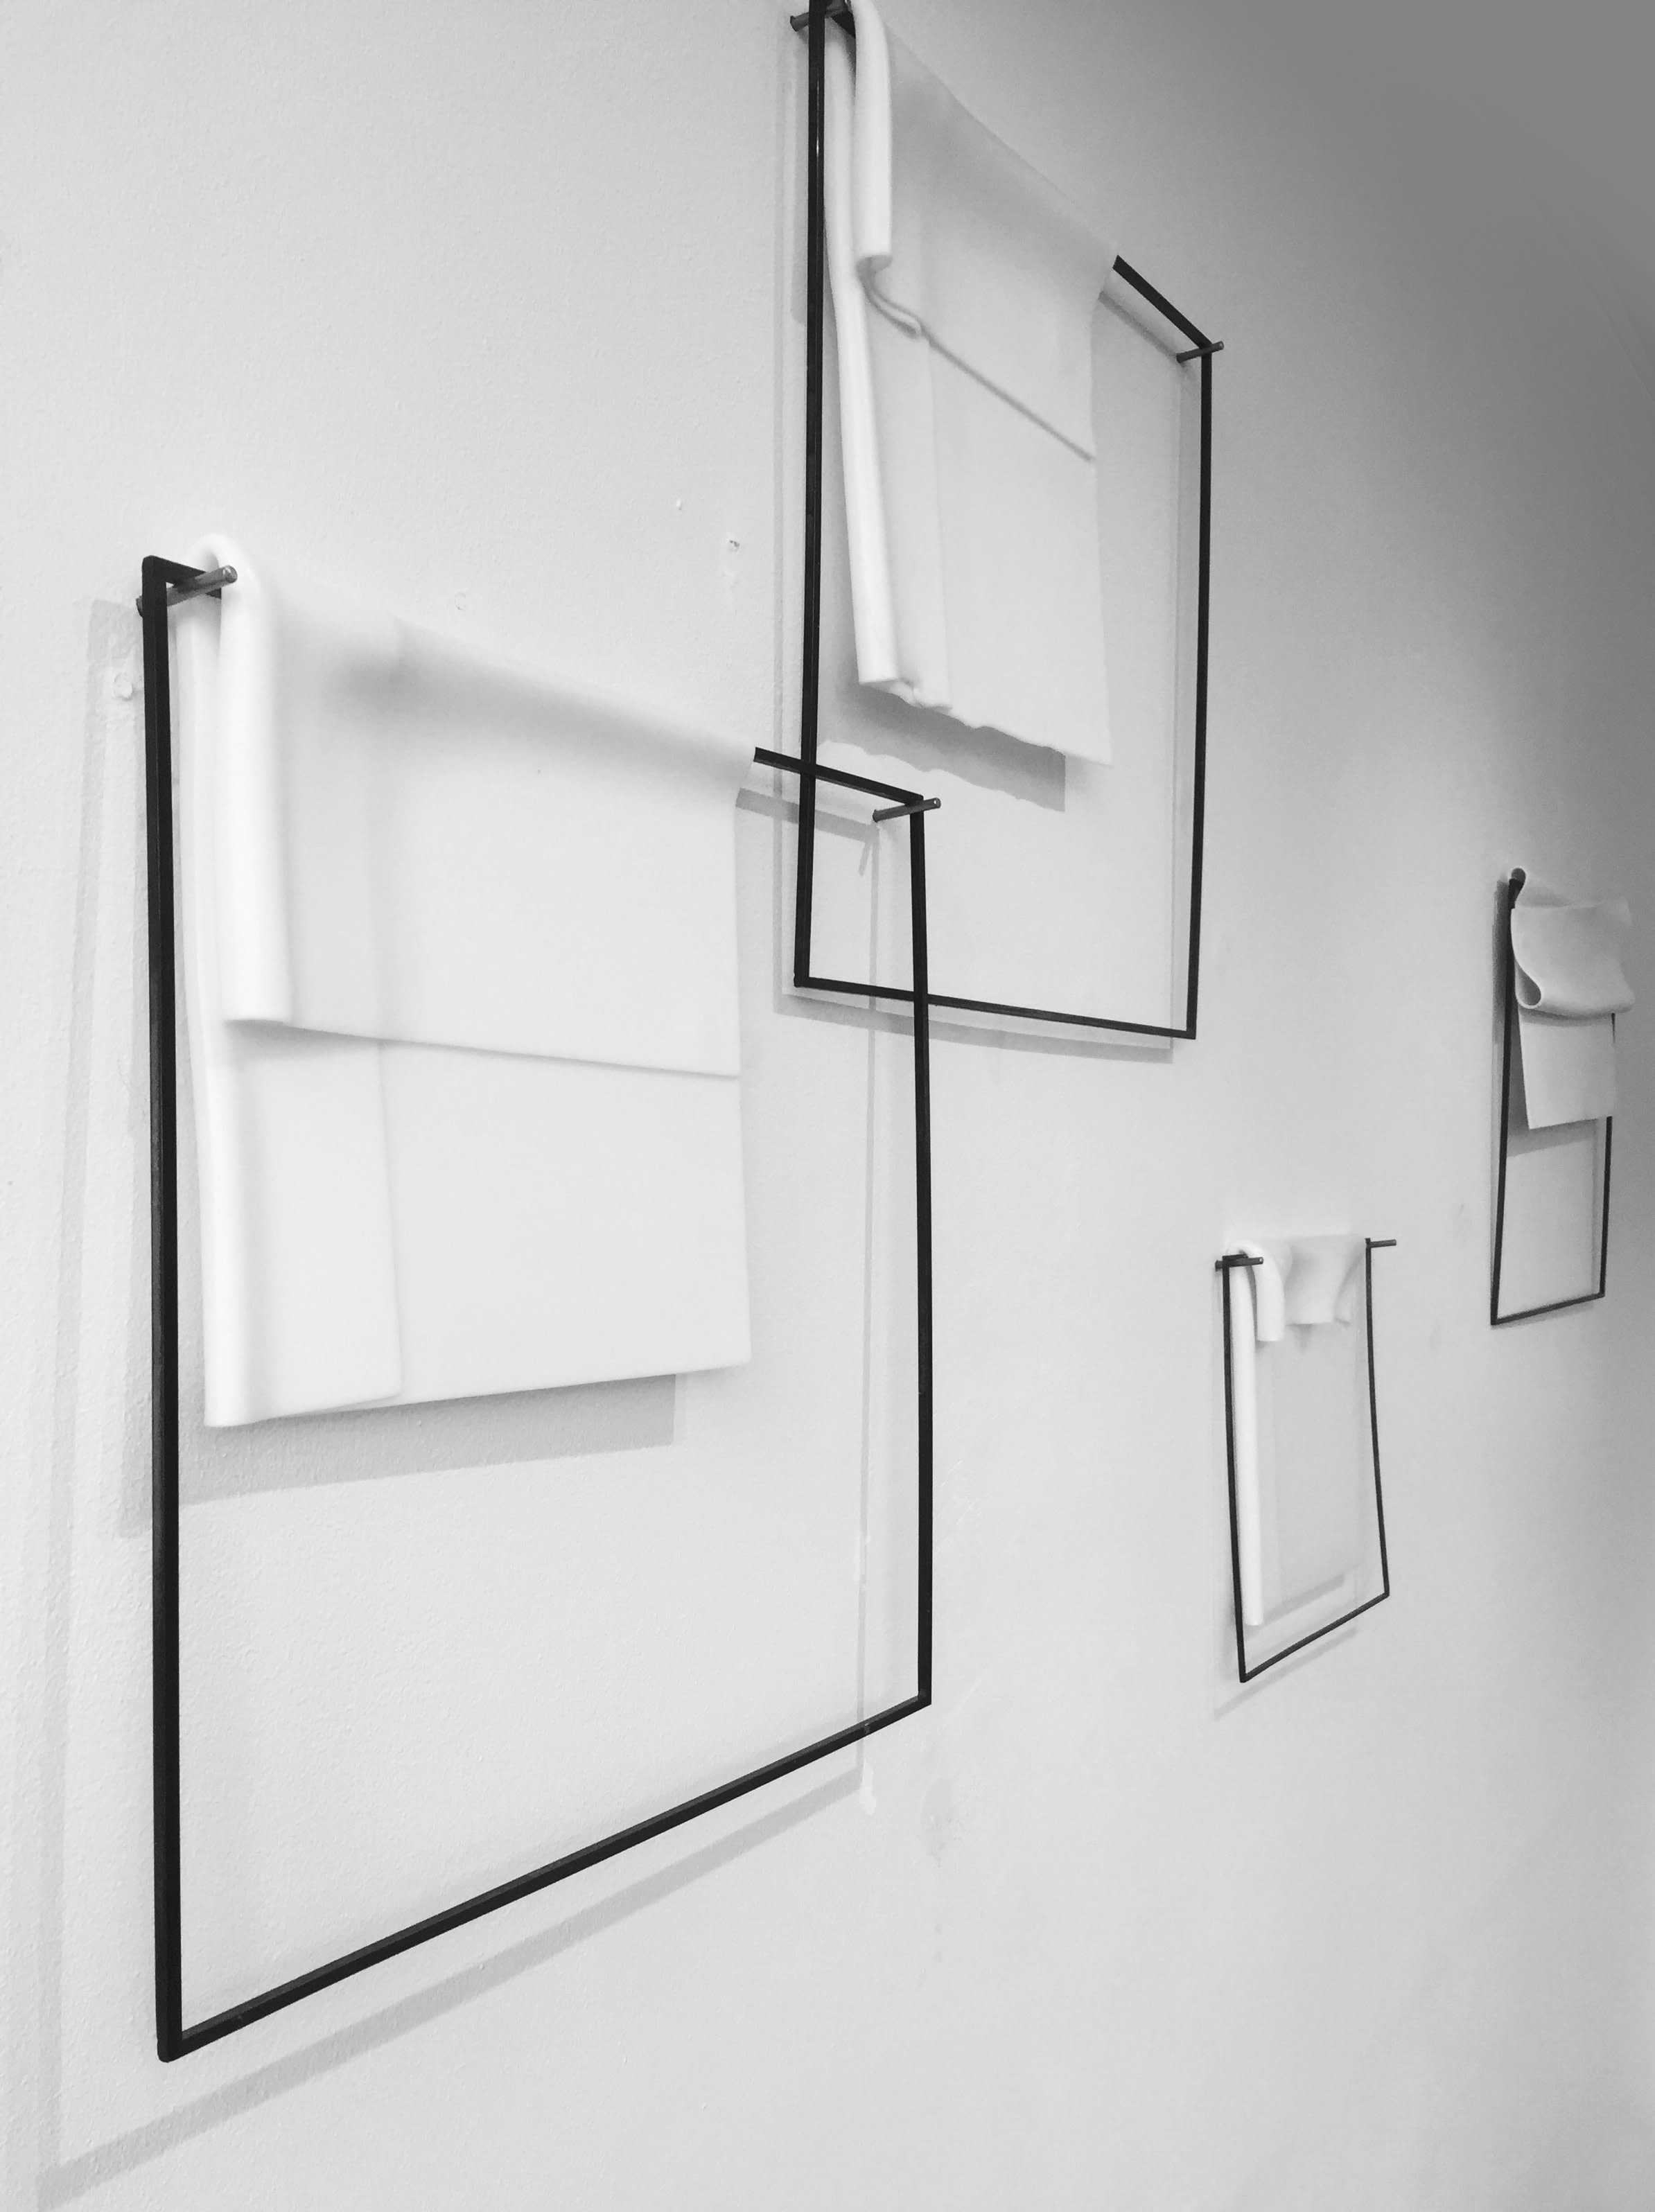 Marzena Krzemińska-Baluch, installed view of The Stijl/The Style series, 2017, kilnformed glass and metal frames.